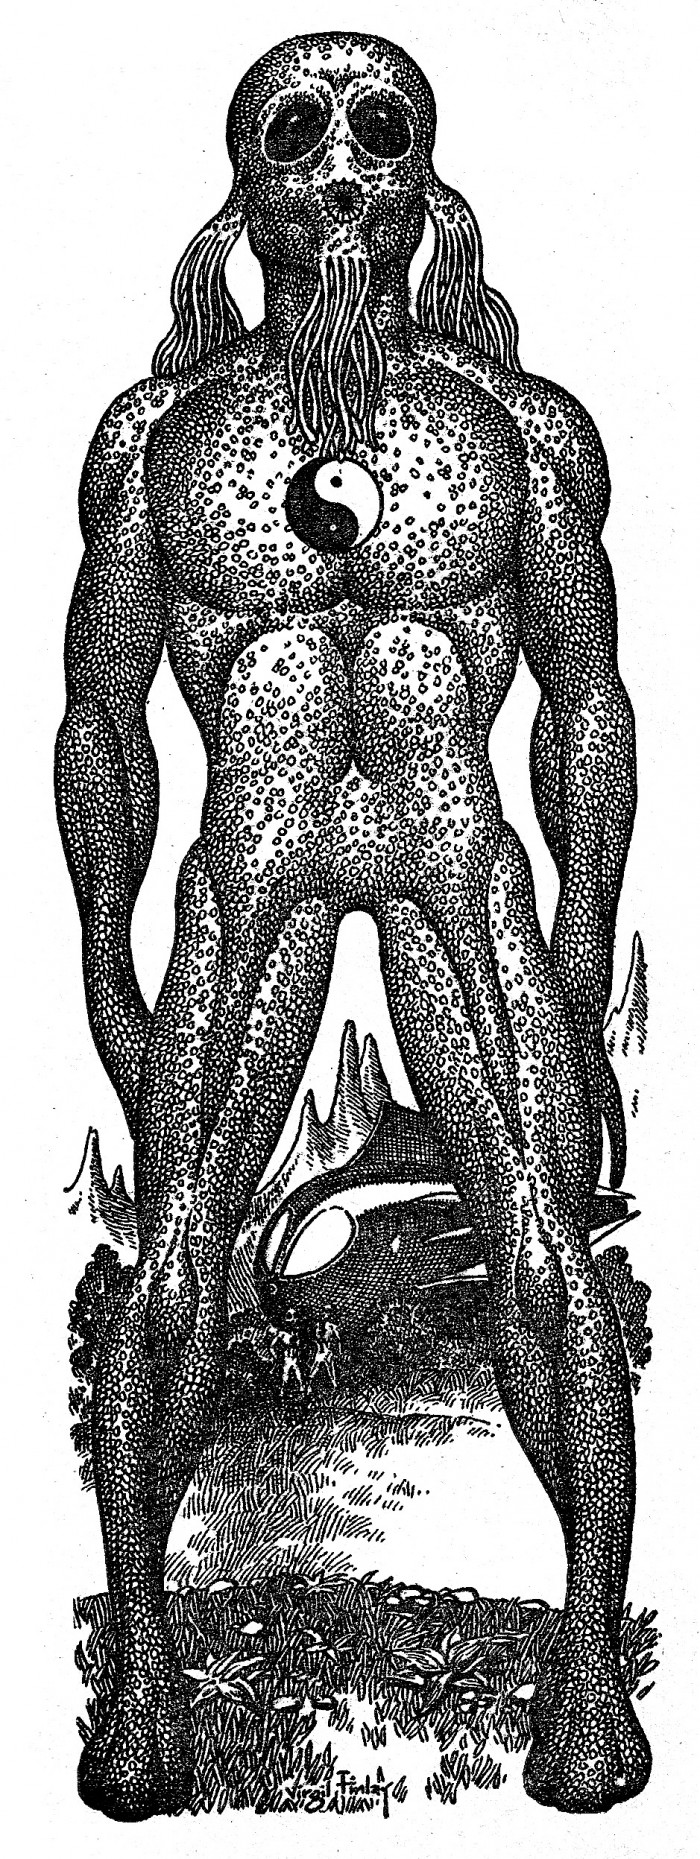 6080648980 b521d1dd6b o 700x1859 Virgil Finlay 1 wtf weird tales stippling scifi illustration horror fantasy Awesome Things Art animals